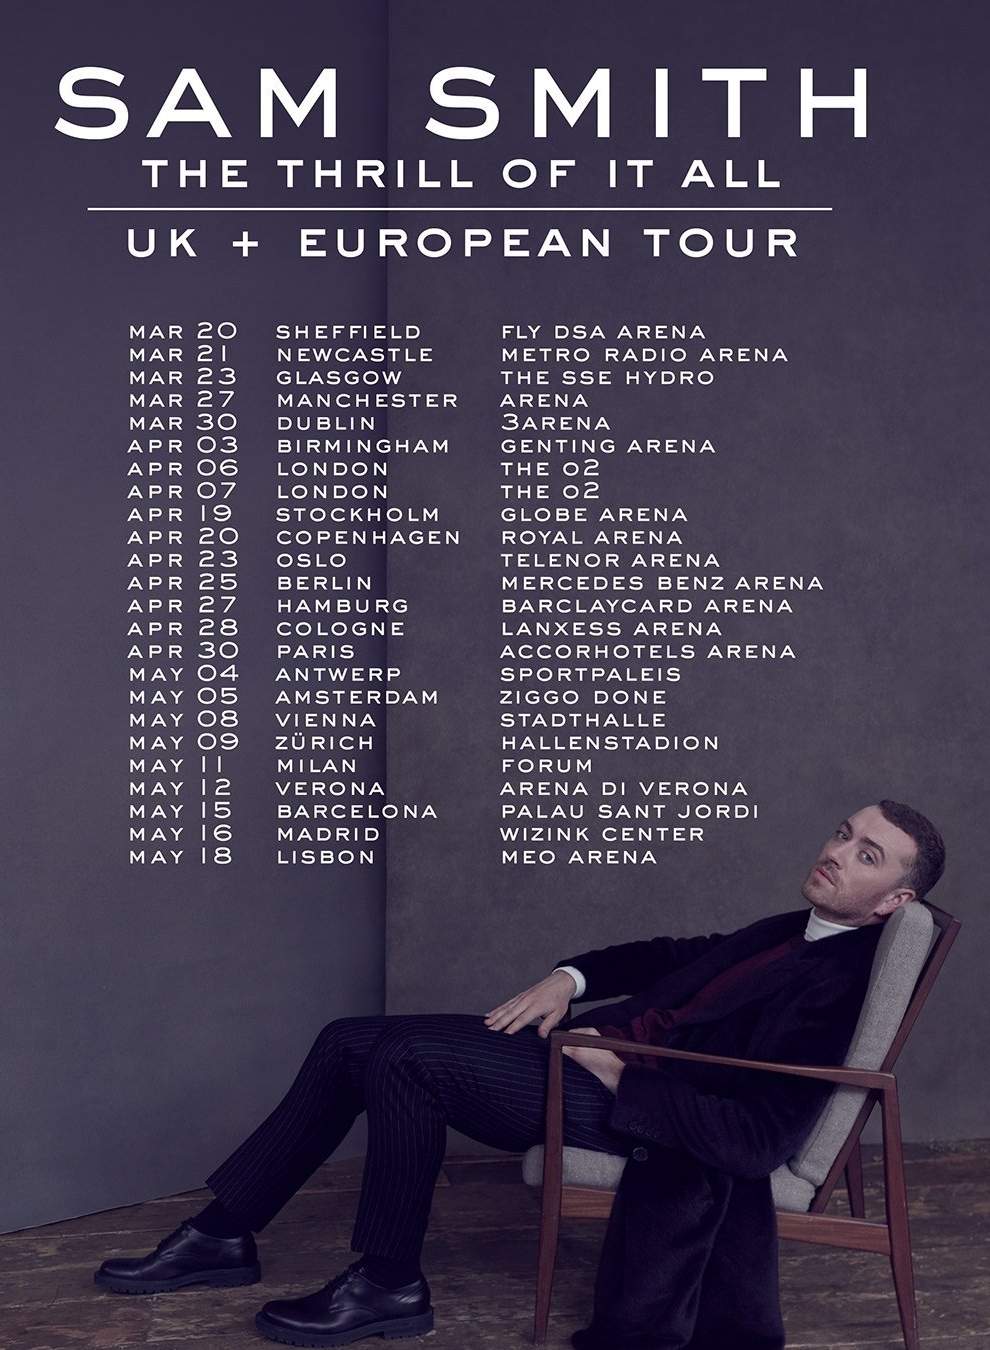 sam smith tour dates 2018/2019